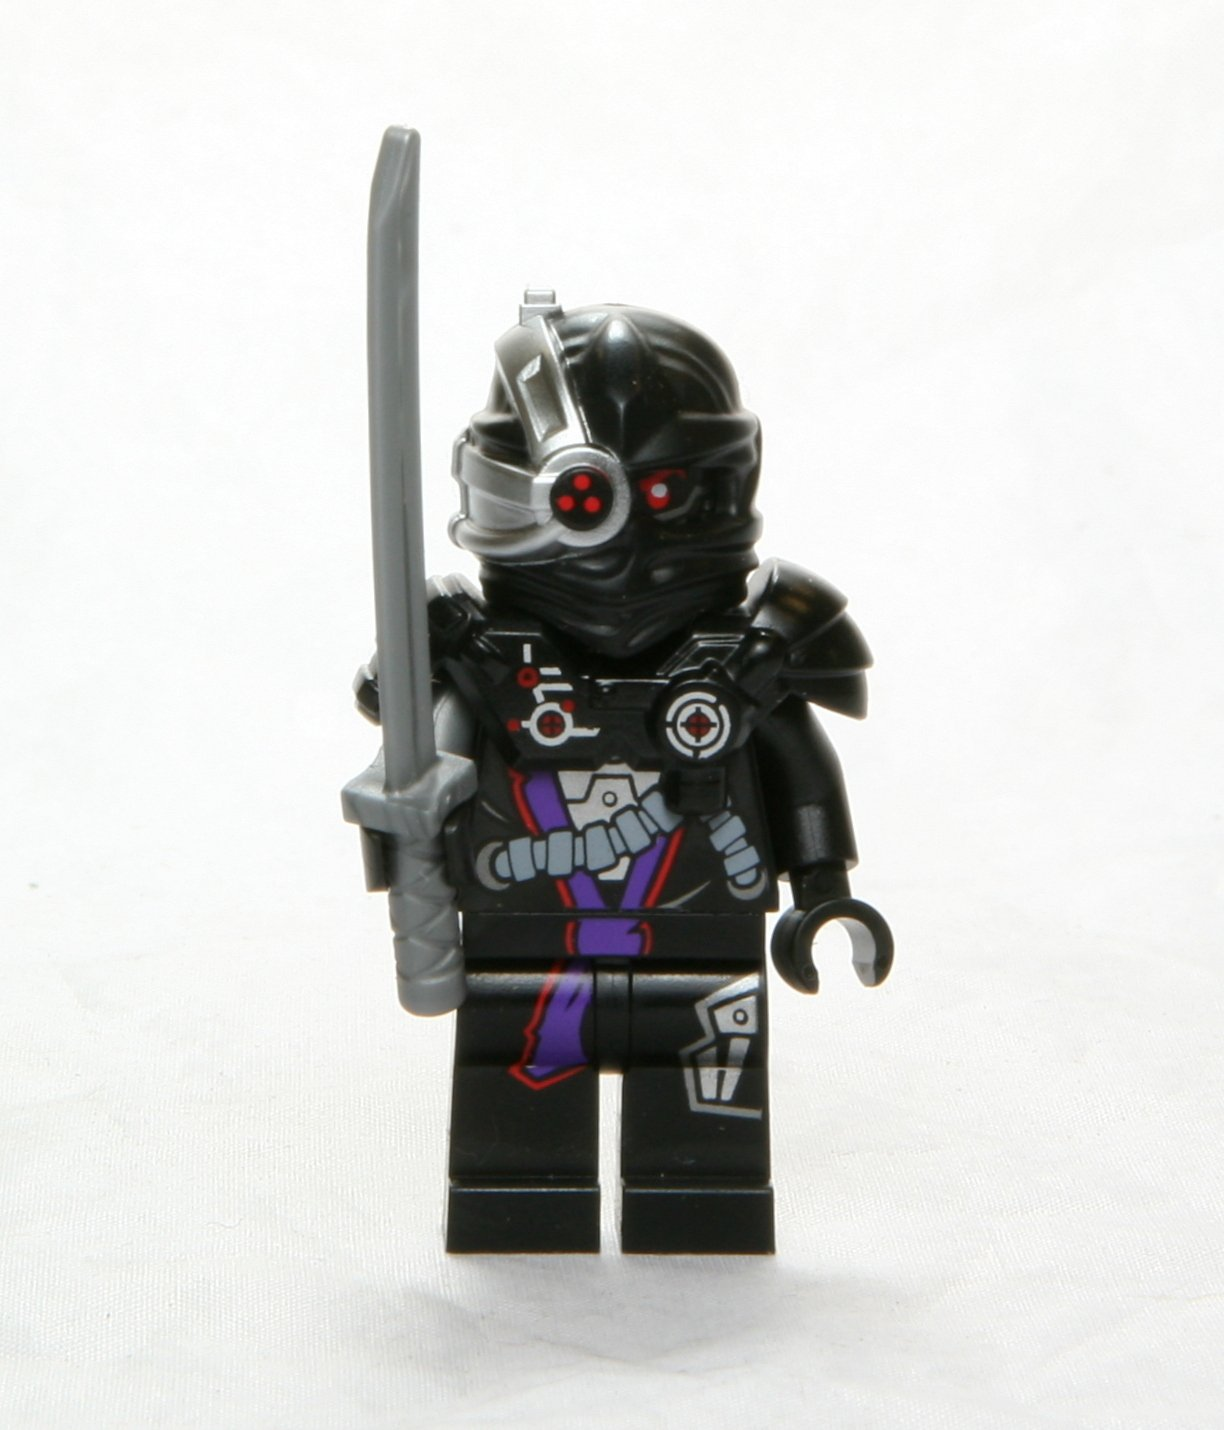 Lego: Ninjago 2014 - General Cryptor